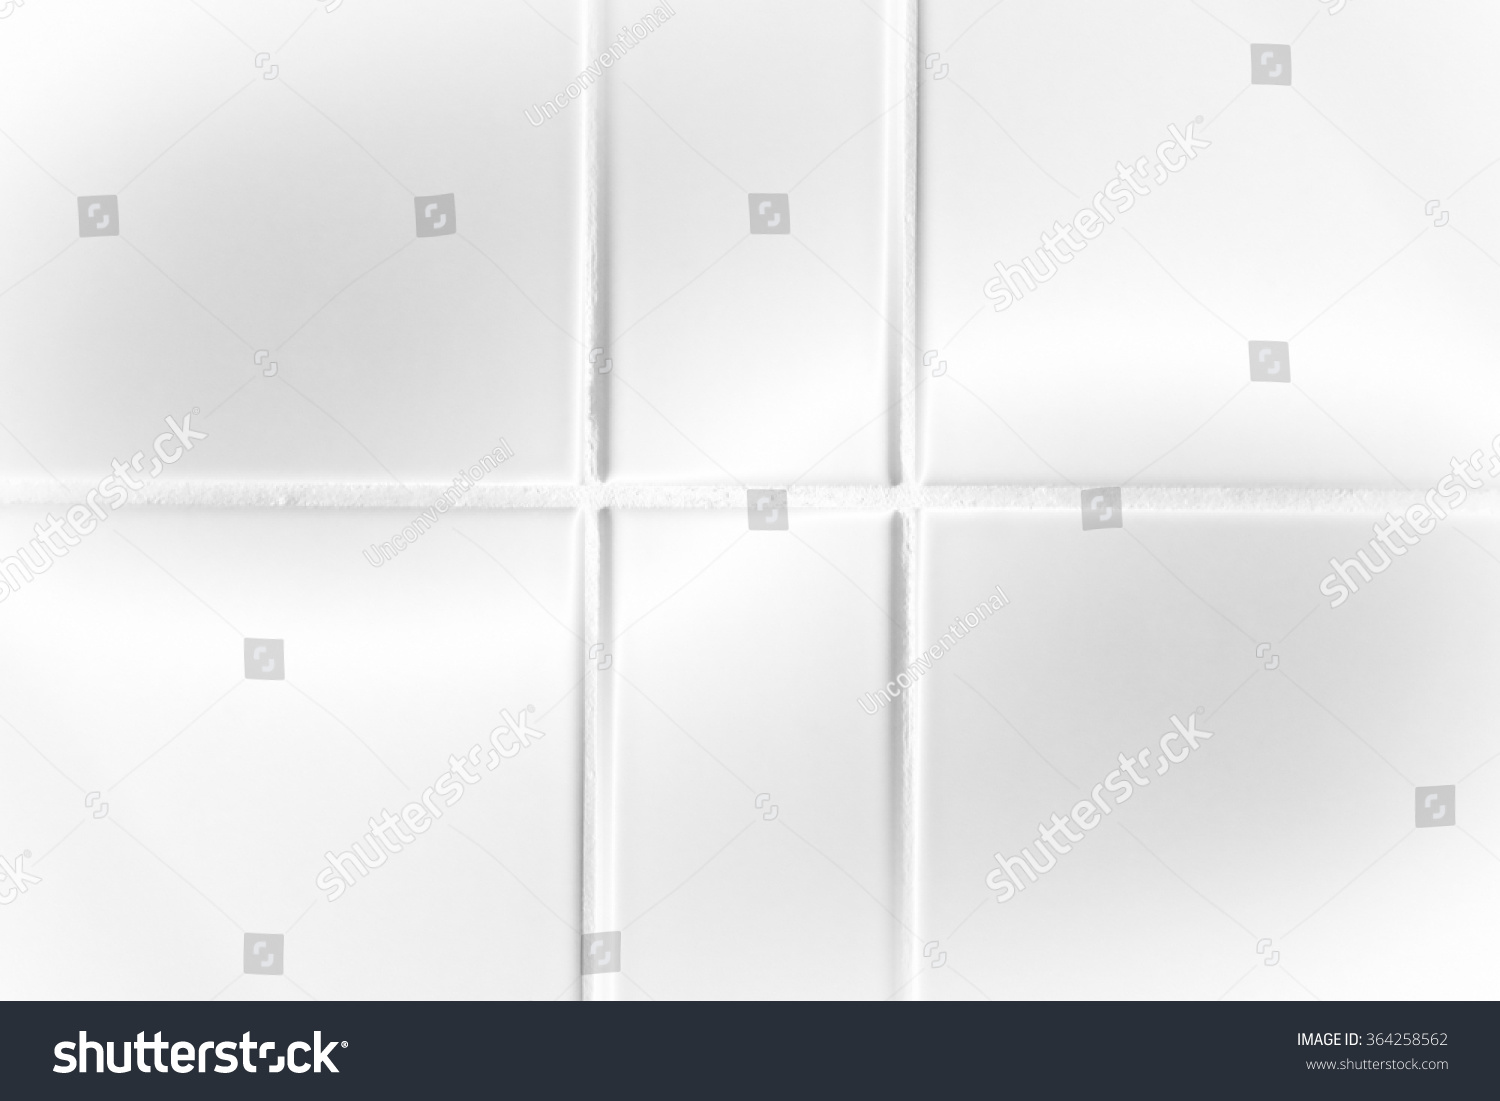 Wall sterile white ceramic tiles abstract stock photo 364258562 wall with sterile white ceramic tiles abstract material background suitable for fragmentation of text over dailygadgetfo Choice Image